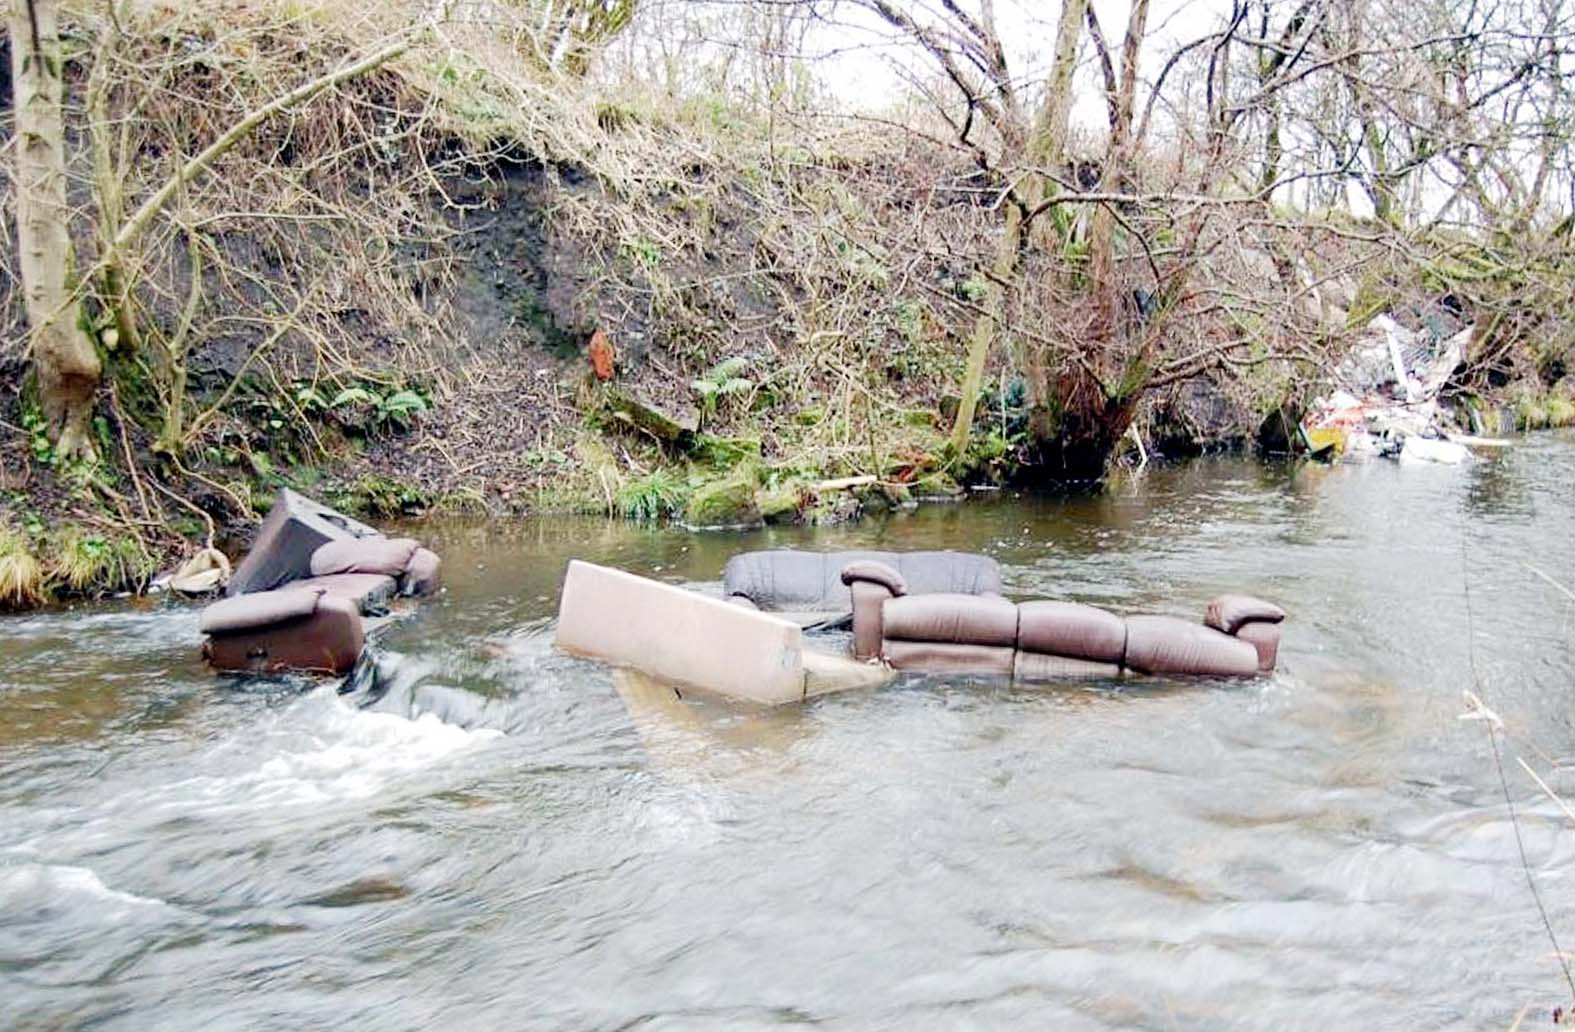 Fly-tippers ruin popular Bolton beauty spot by dumping rubbish in Bradshaw Brook